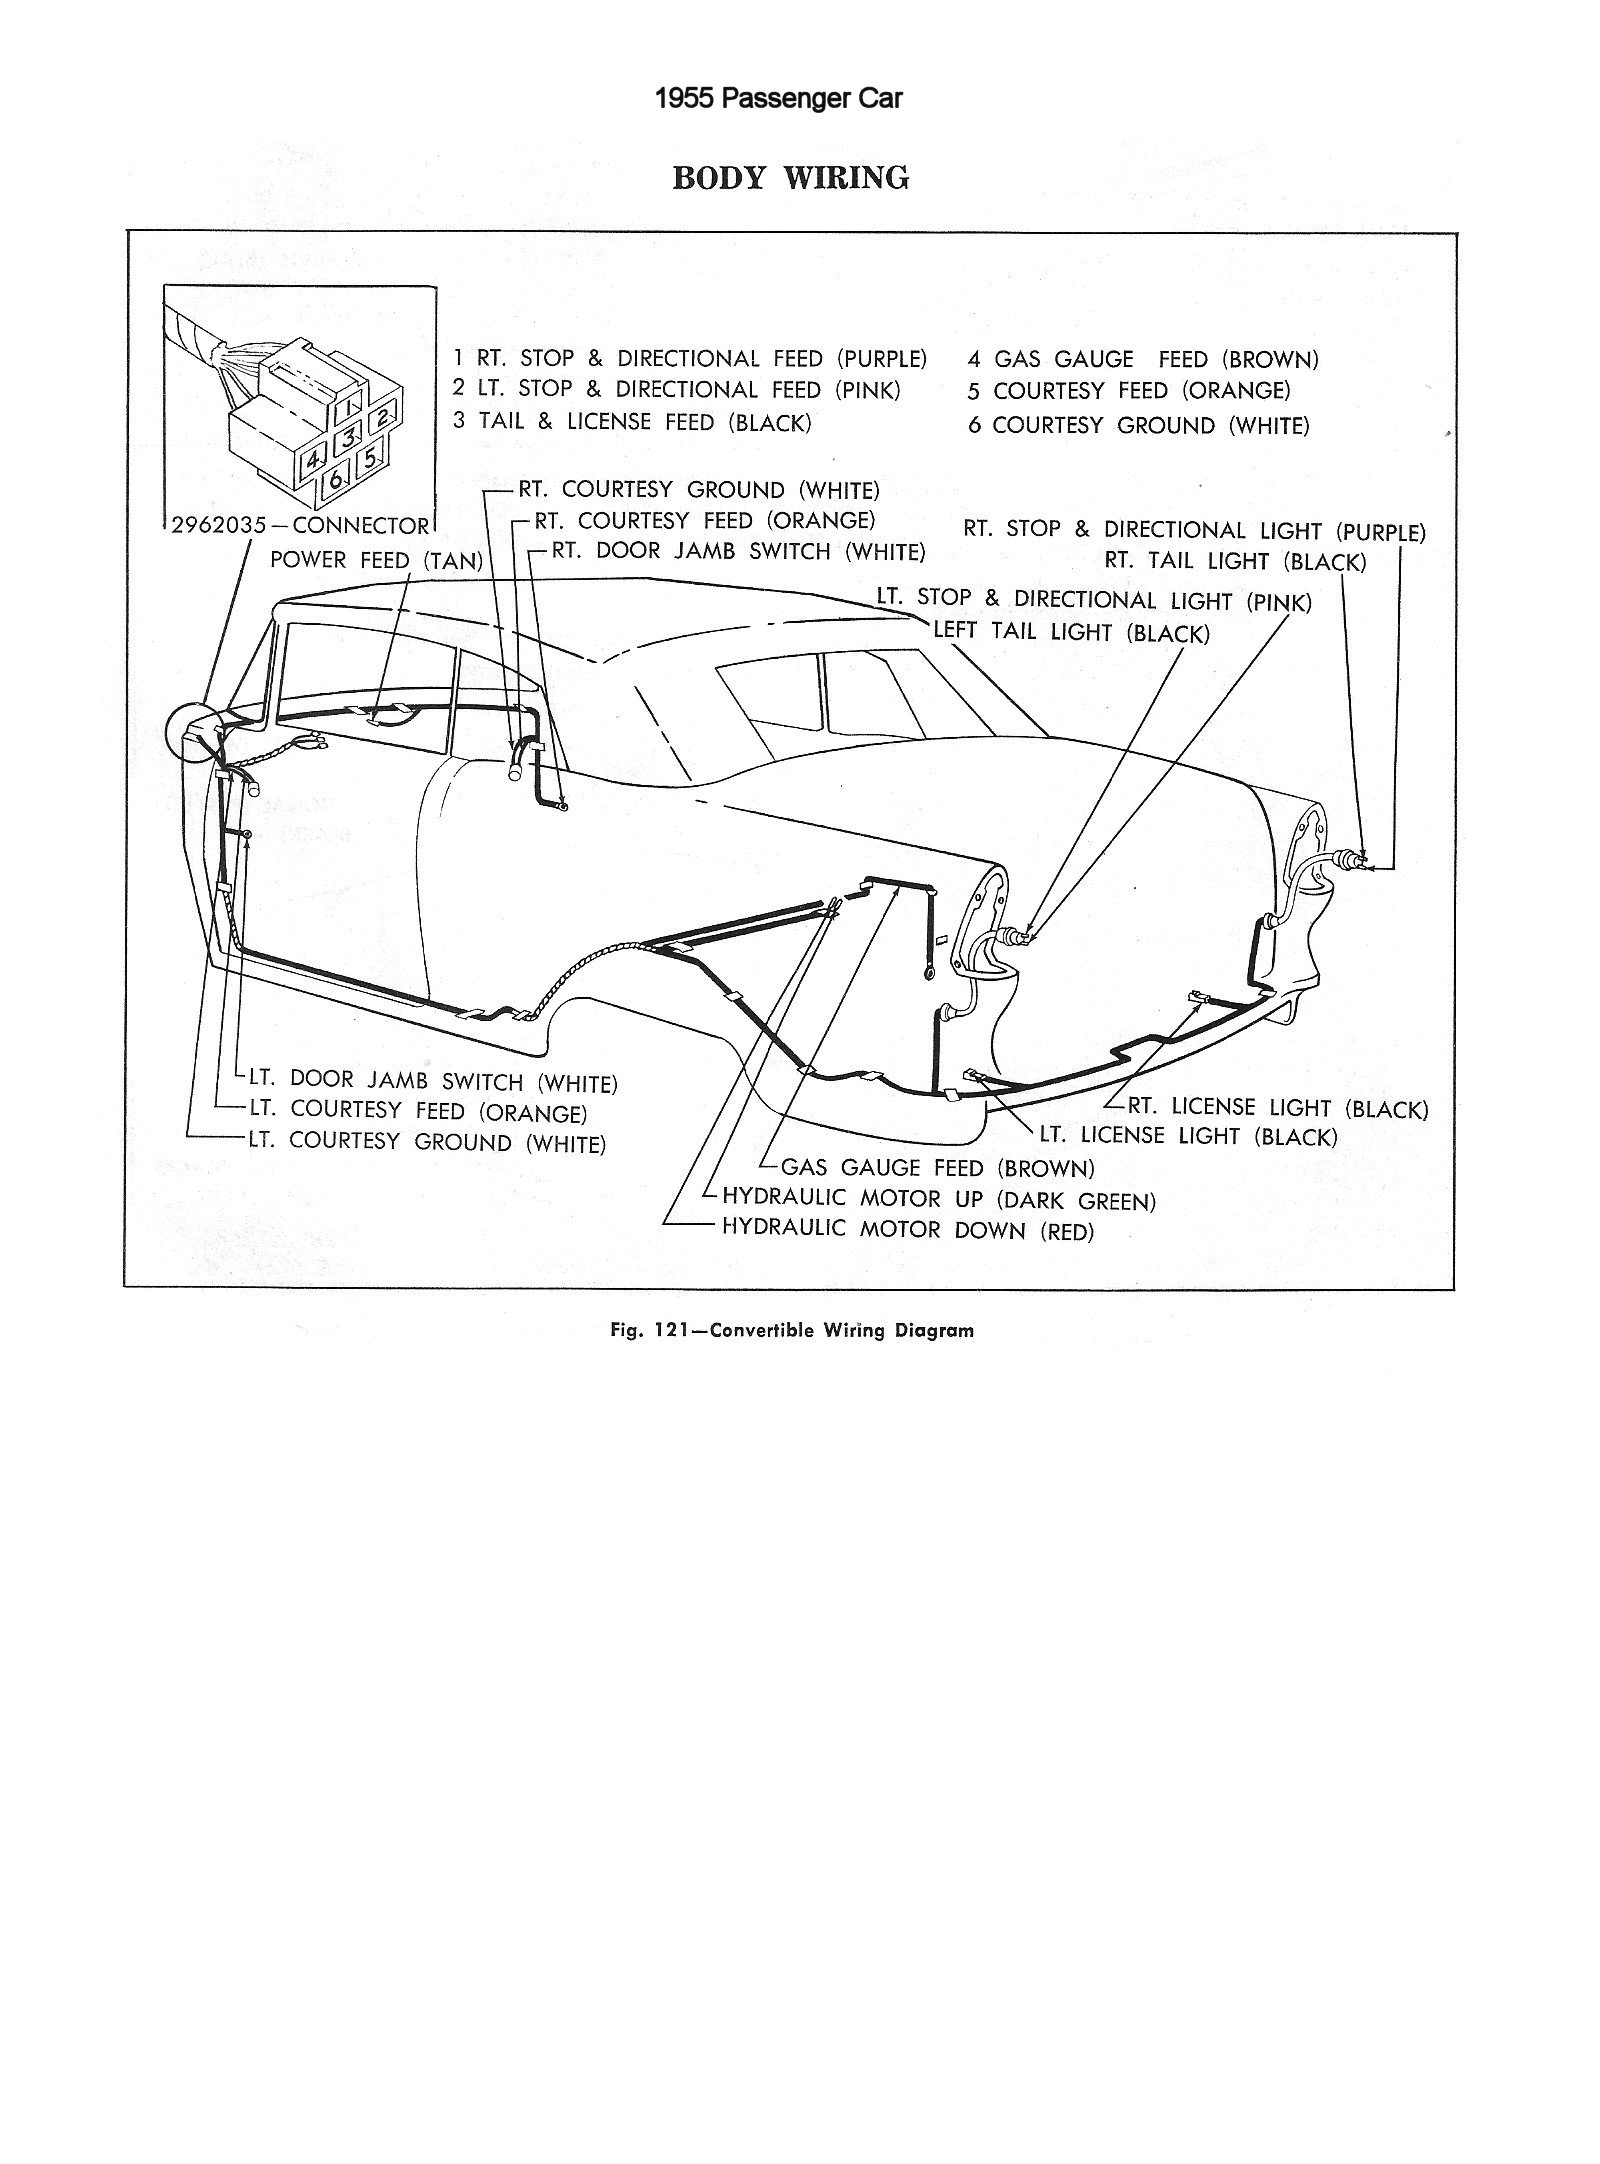 Chevy Wiring Diagrams 1997 Nissan Xe V6 Body Ground Fuse Box Diagram 1955 Passenger Car